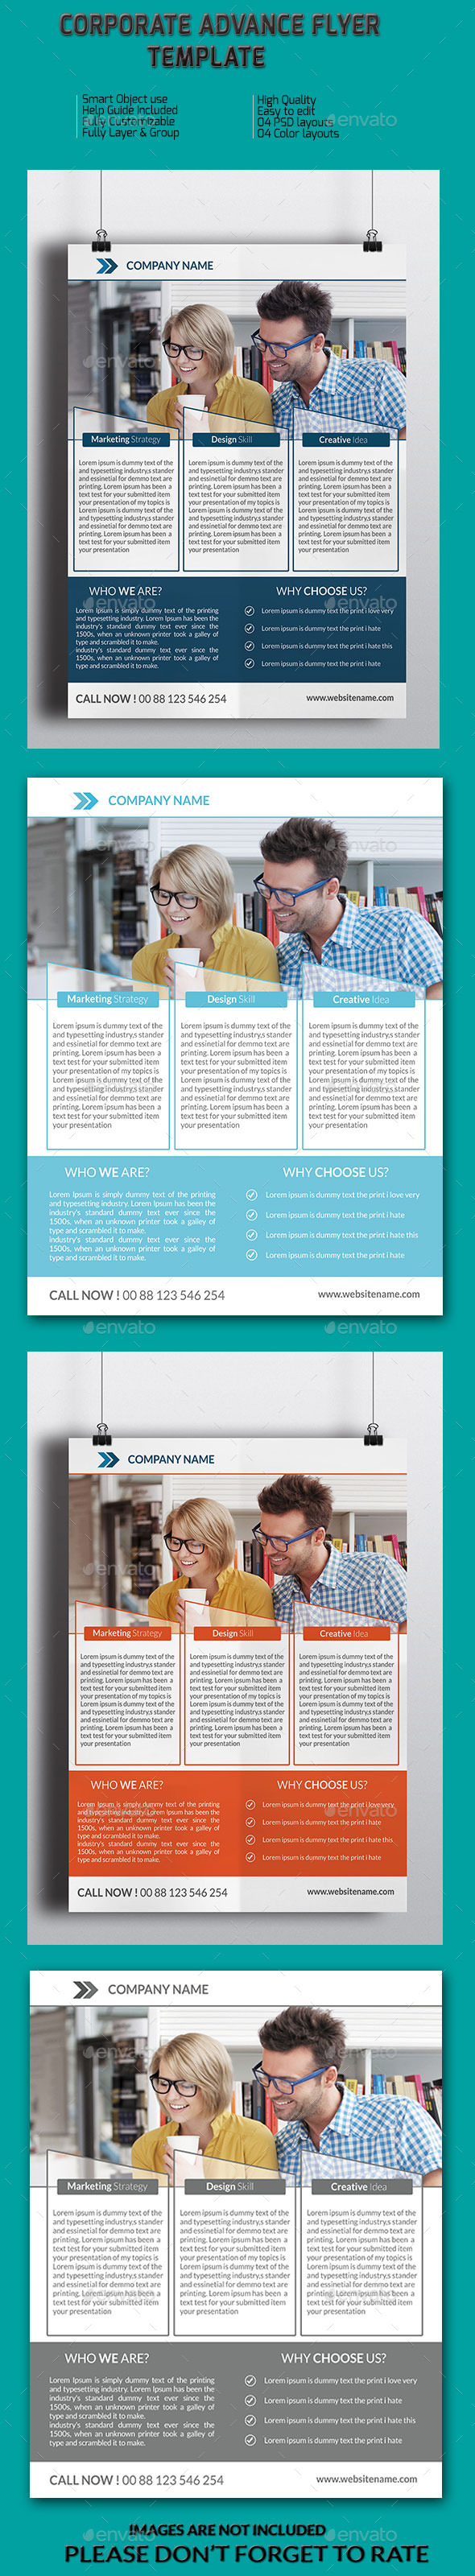 GraphicRiver Corporate Advance Flyer Template 8981101